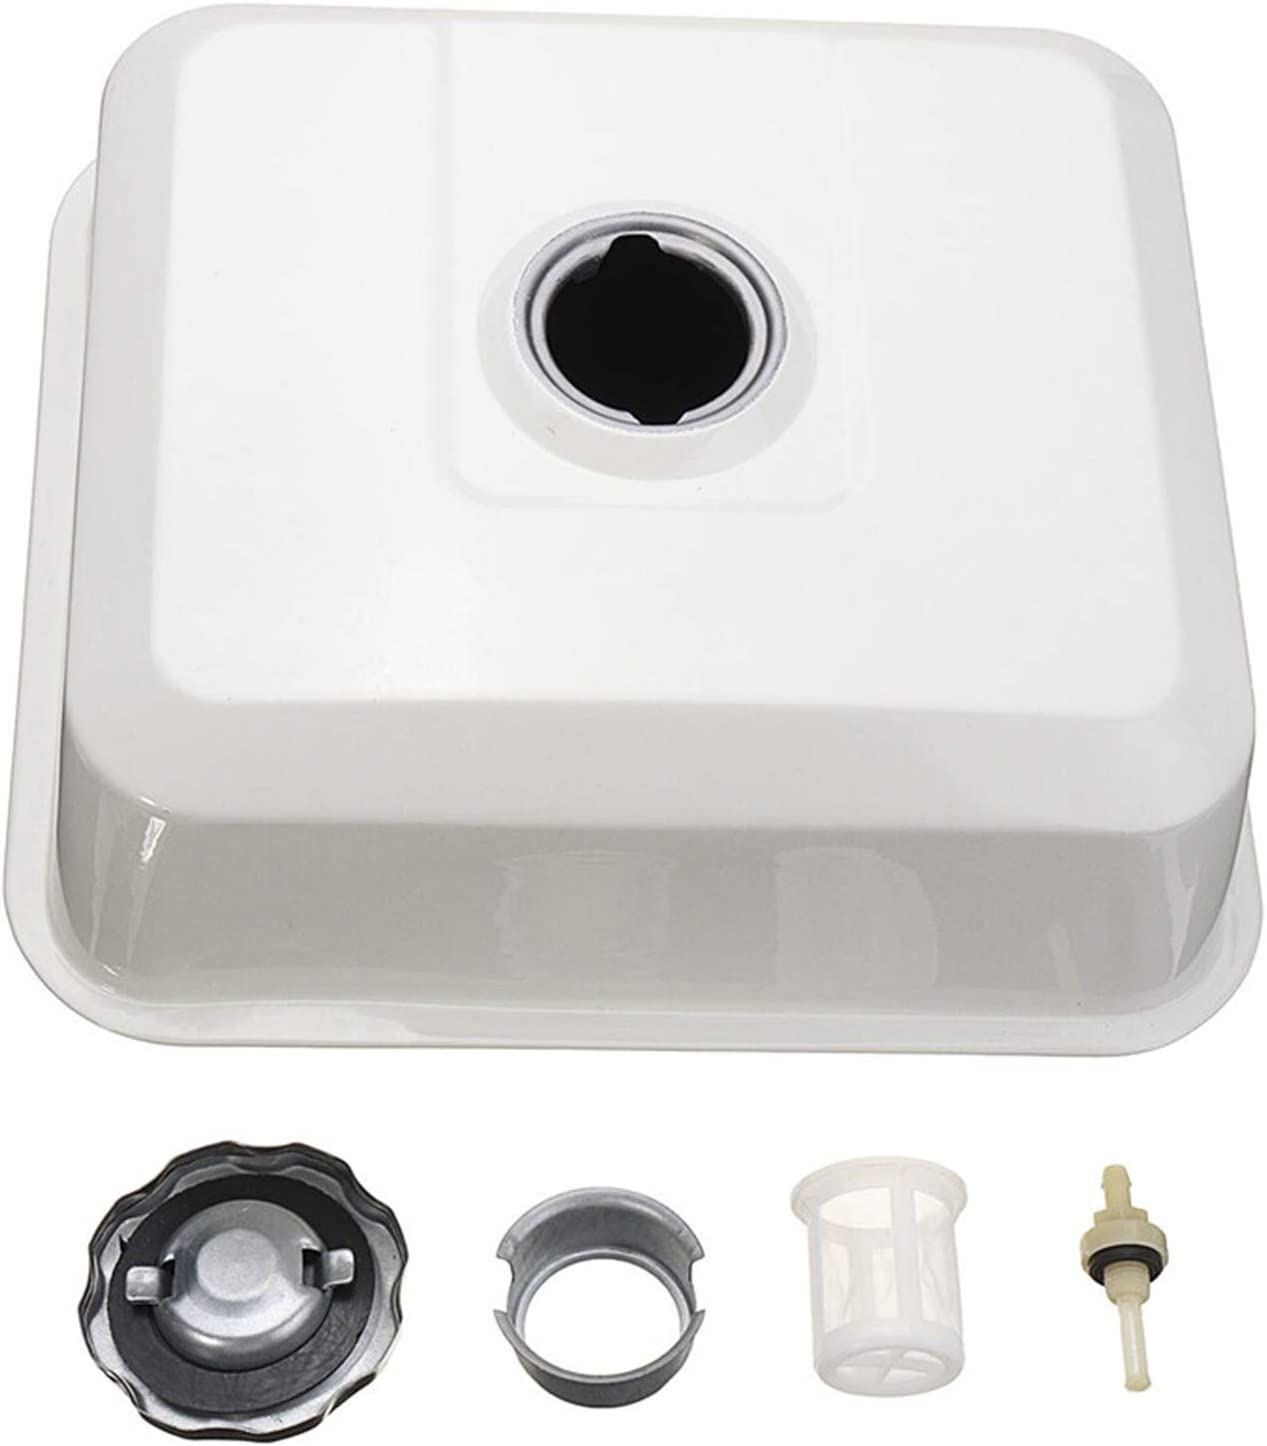 Outdoors & Sqares Fuel Tank Replace Honda GX340 GX390 11 13 HP Engines with Cap